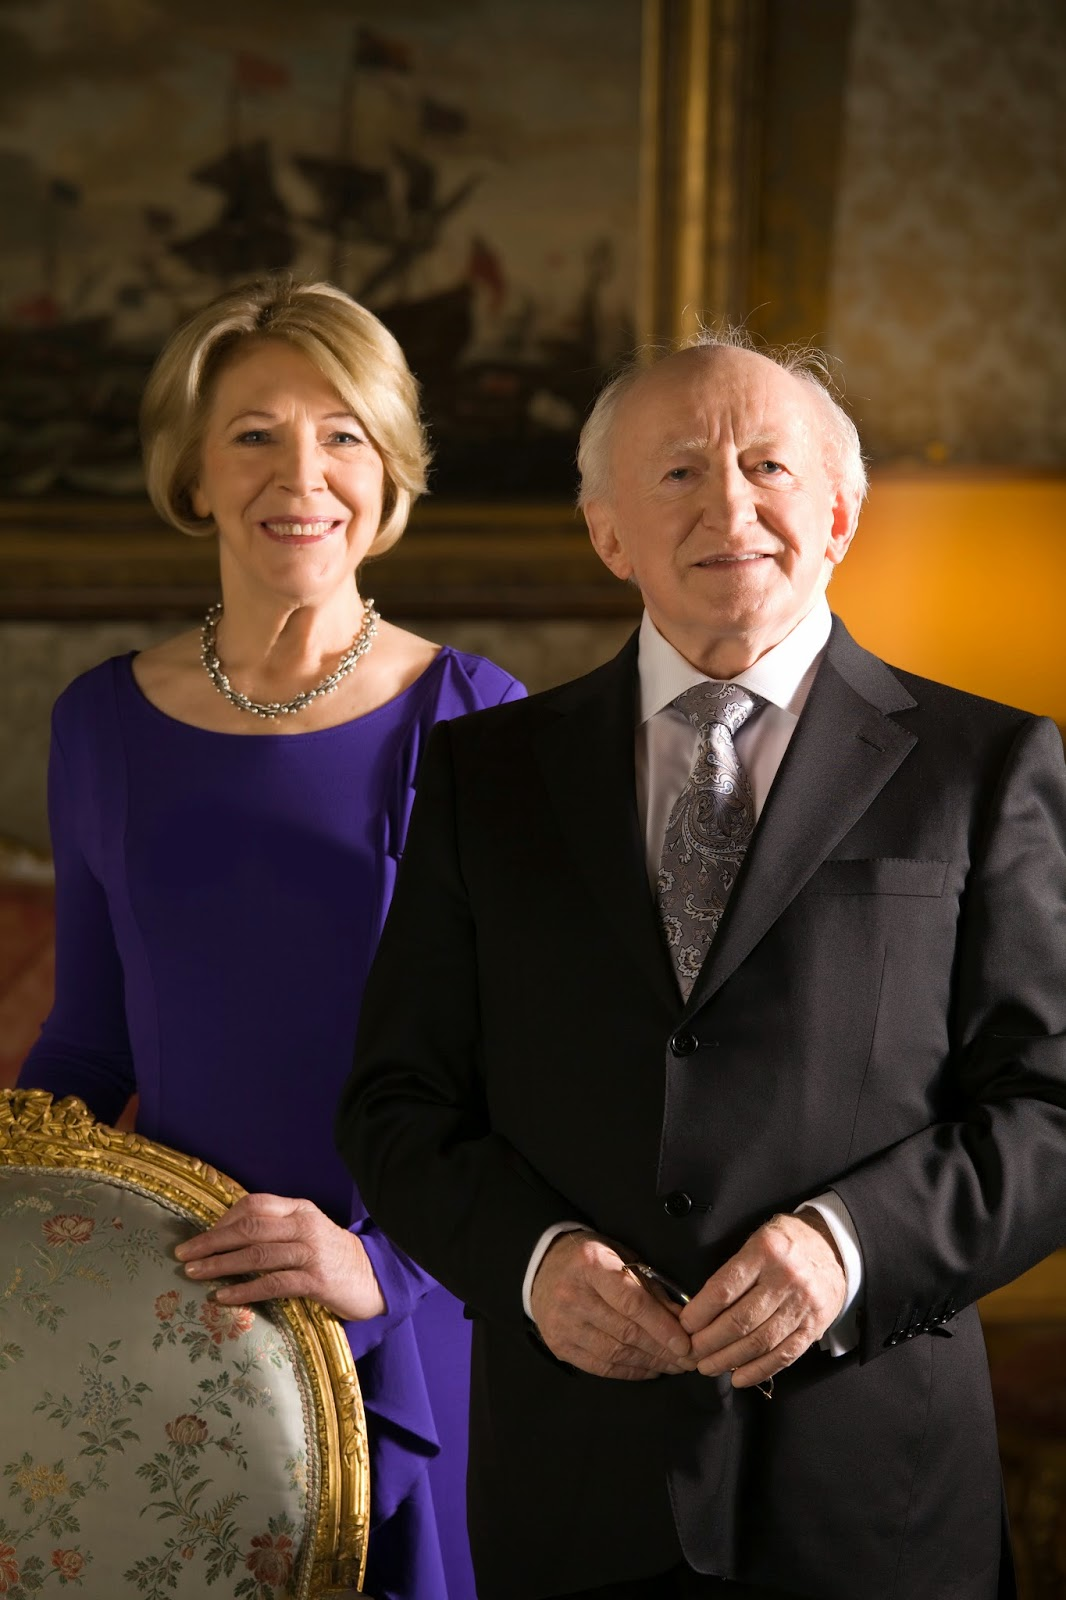 Irish President Michael D. Higgins with wife Sabina.